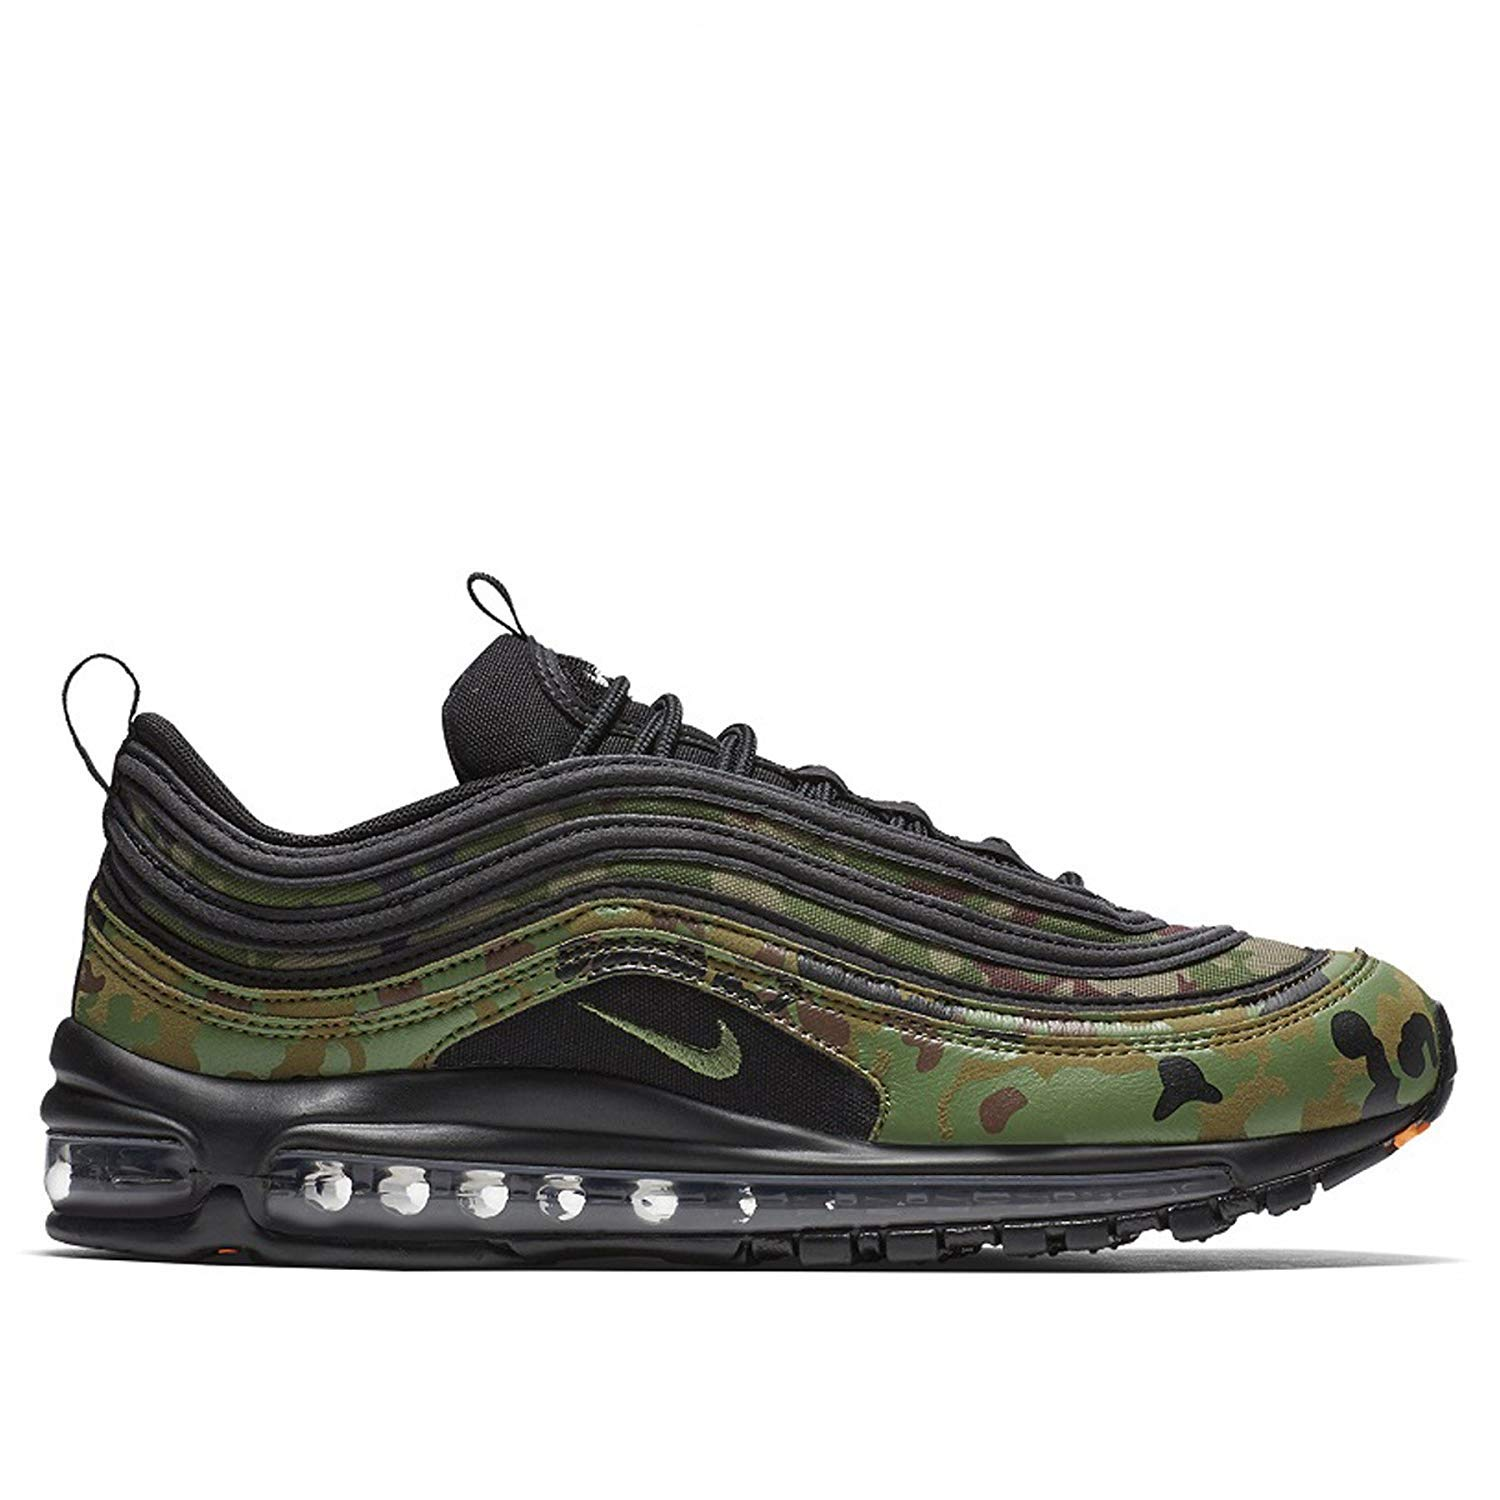 4067ebbee3e5d Amazon.com | Nike Air Max 97 PRM QS Country Camo Pack Japan - US 8 |  Fashion Sneakers